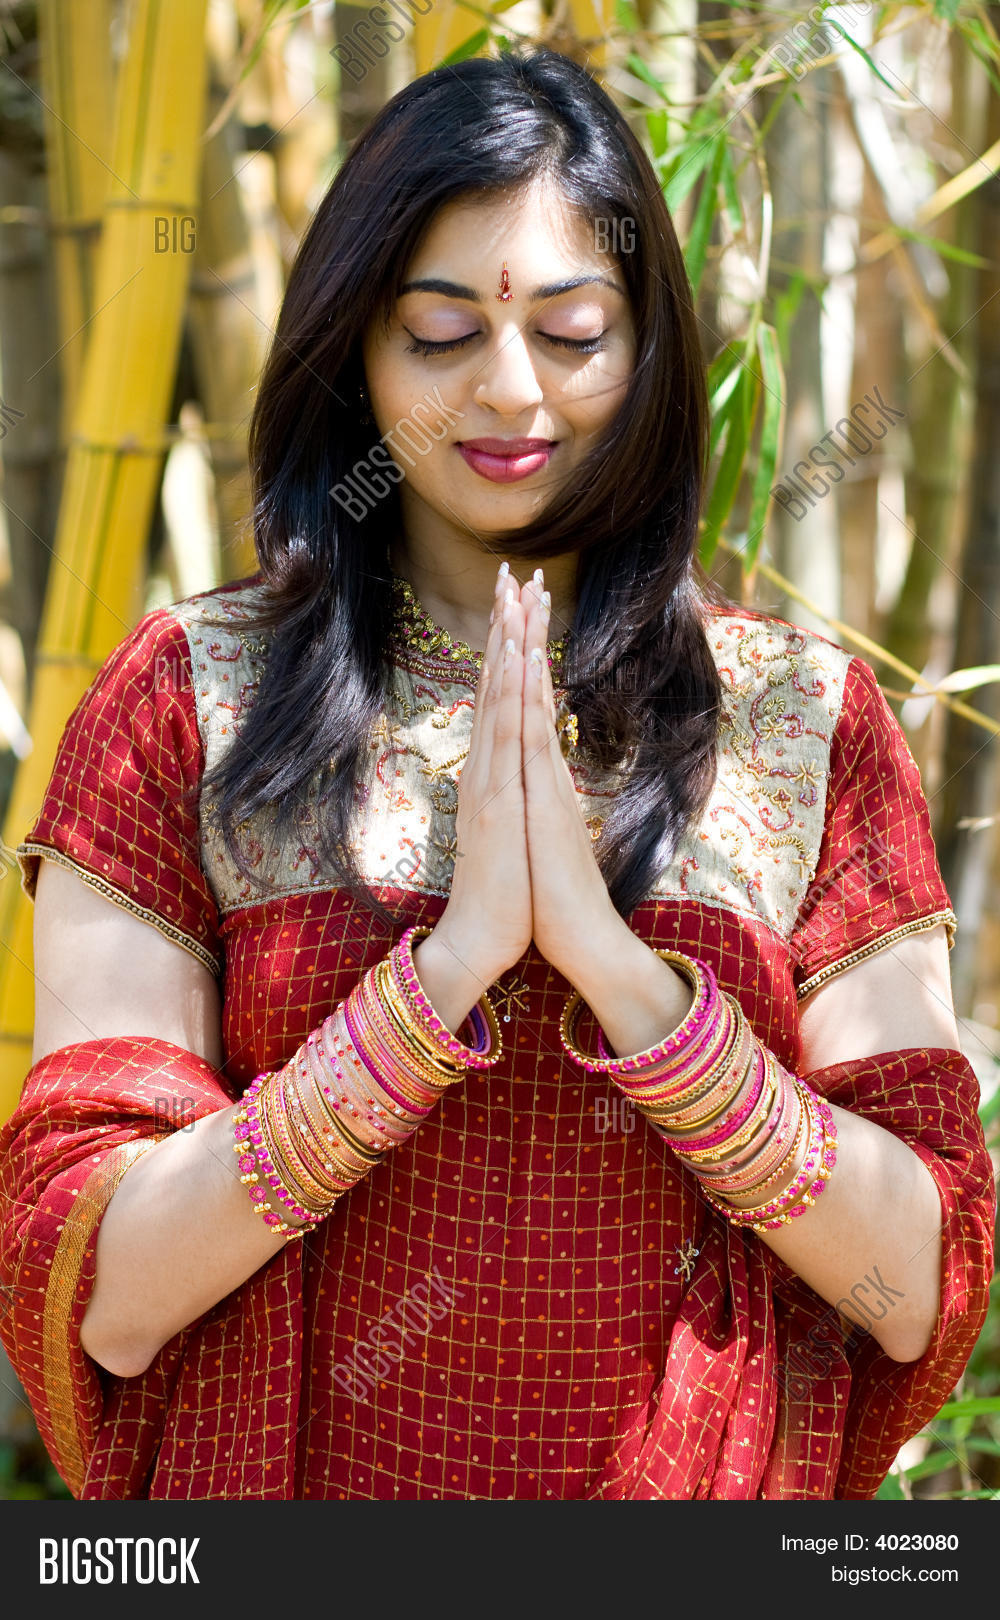 grandin hindu single women Tired of getting nowhere on traditional indian dating sites try elitesingles - the perfect place to meet compatible, eligible indian singles join today.